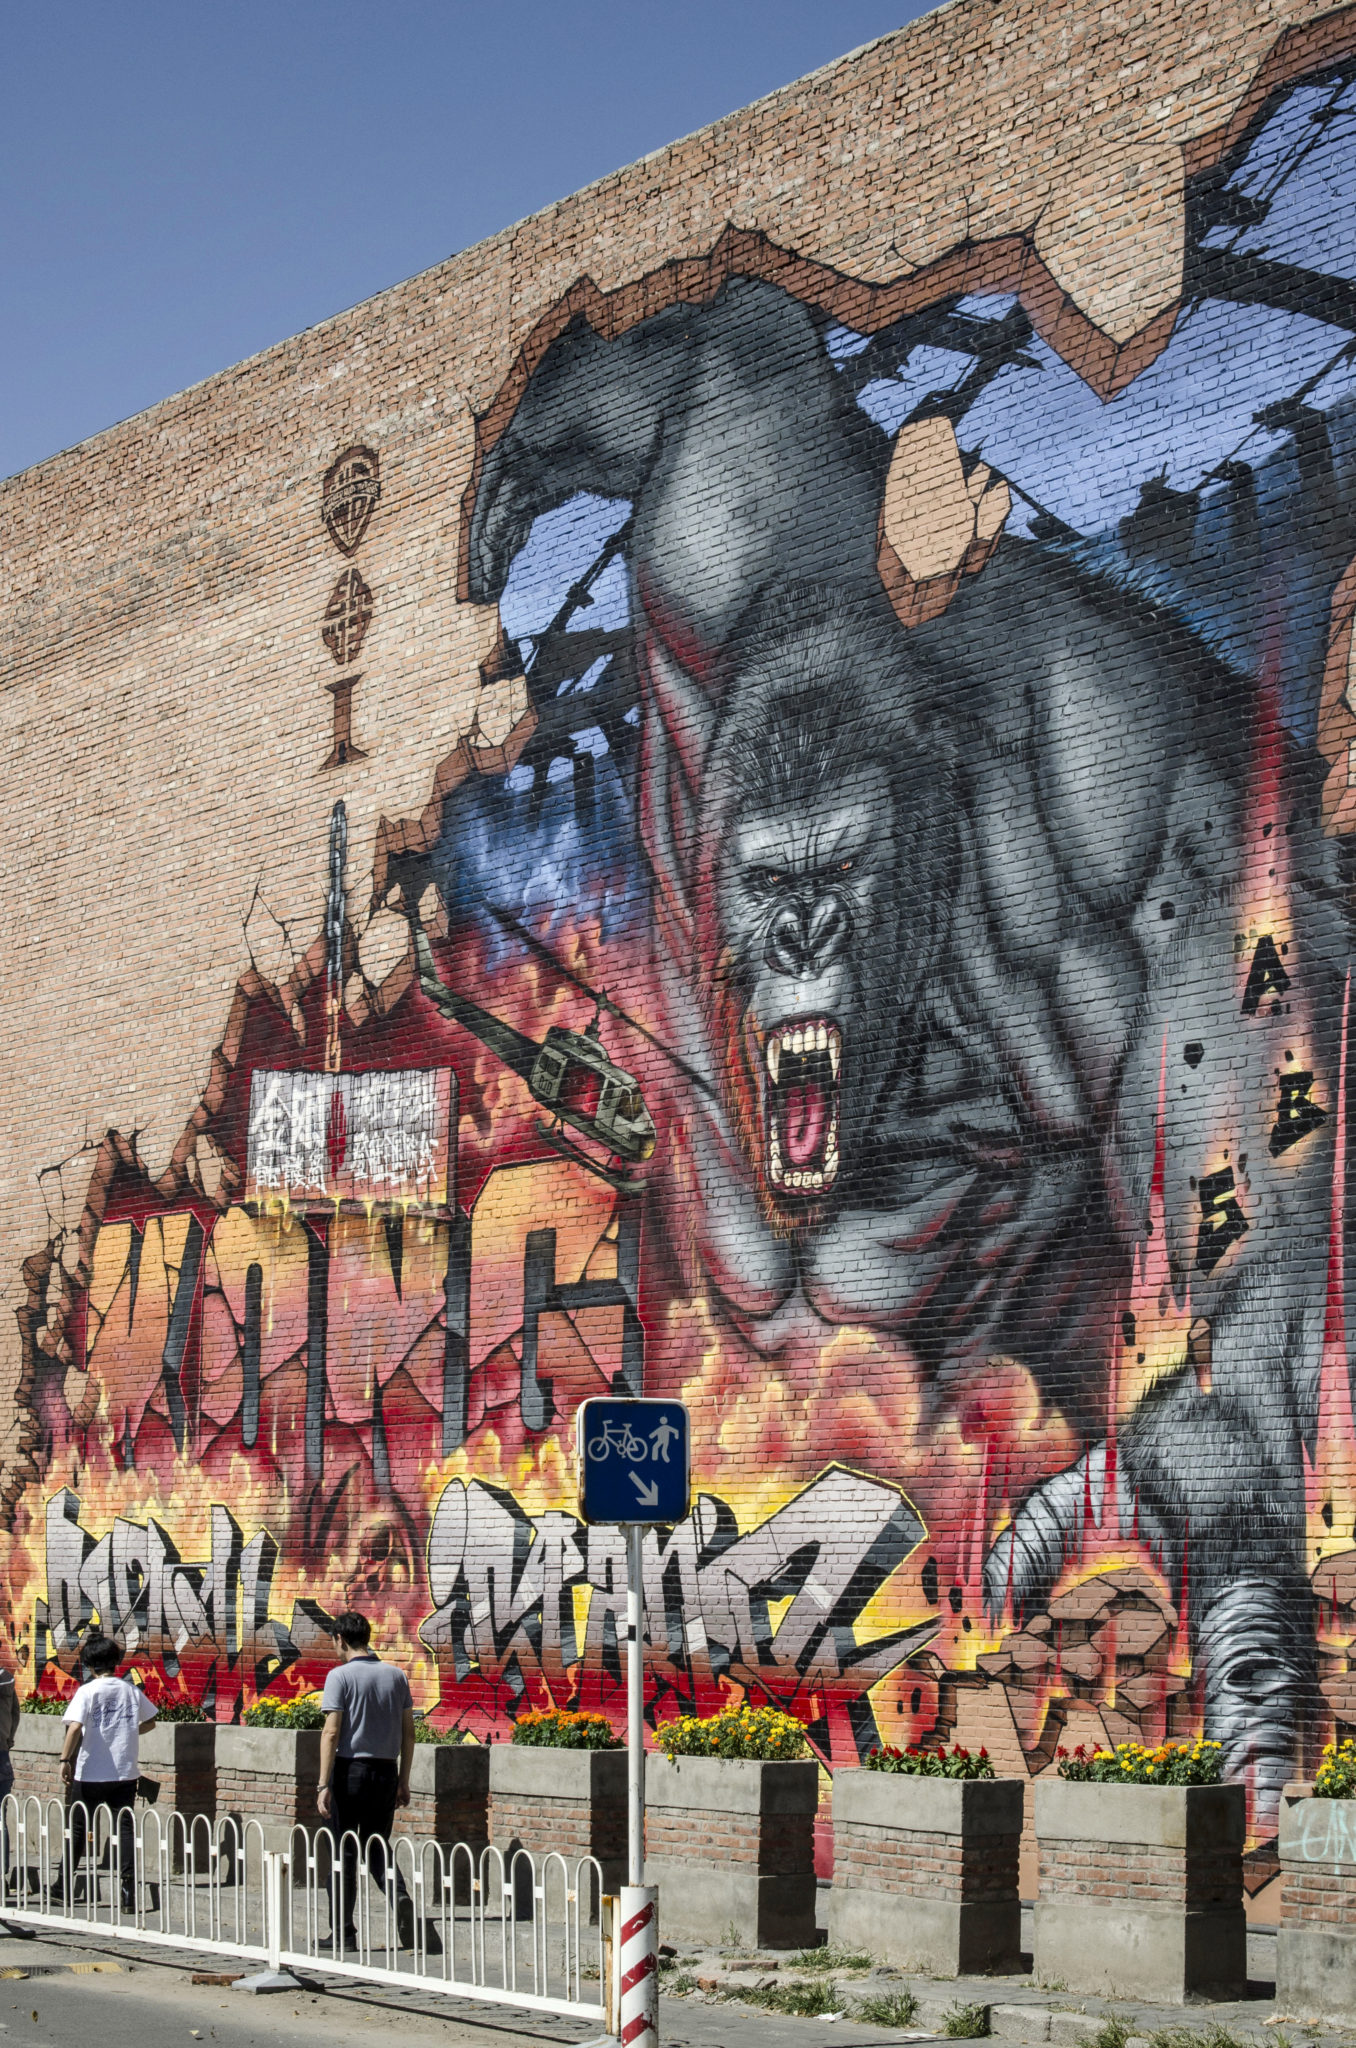 798-Beijing-Art-District-king-kong-mural